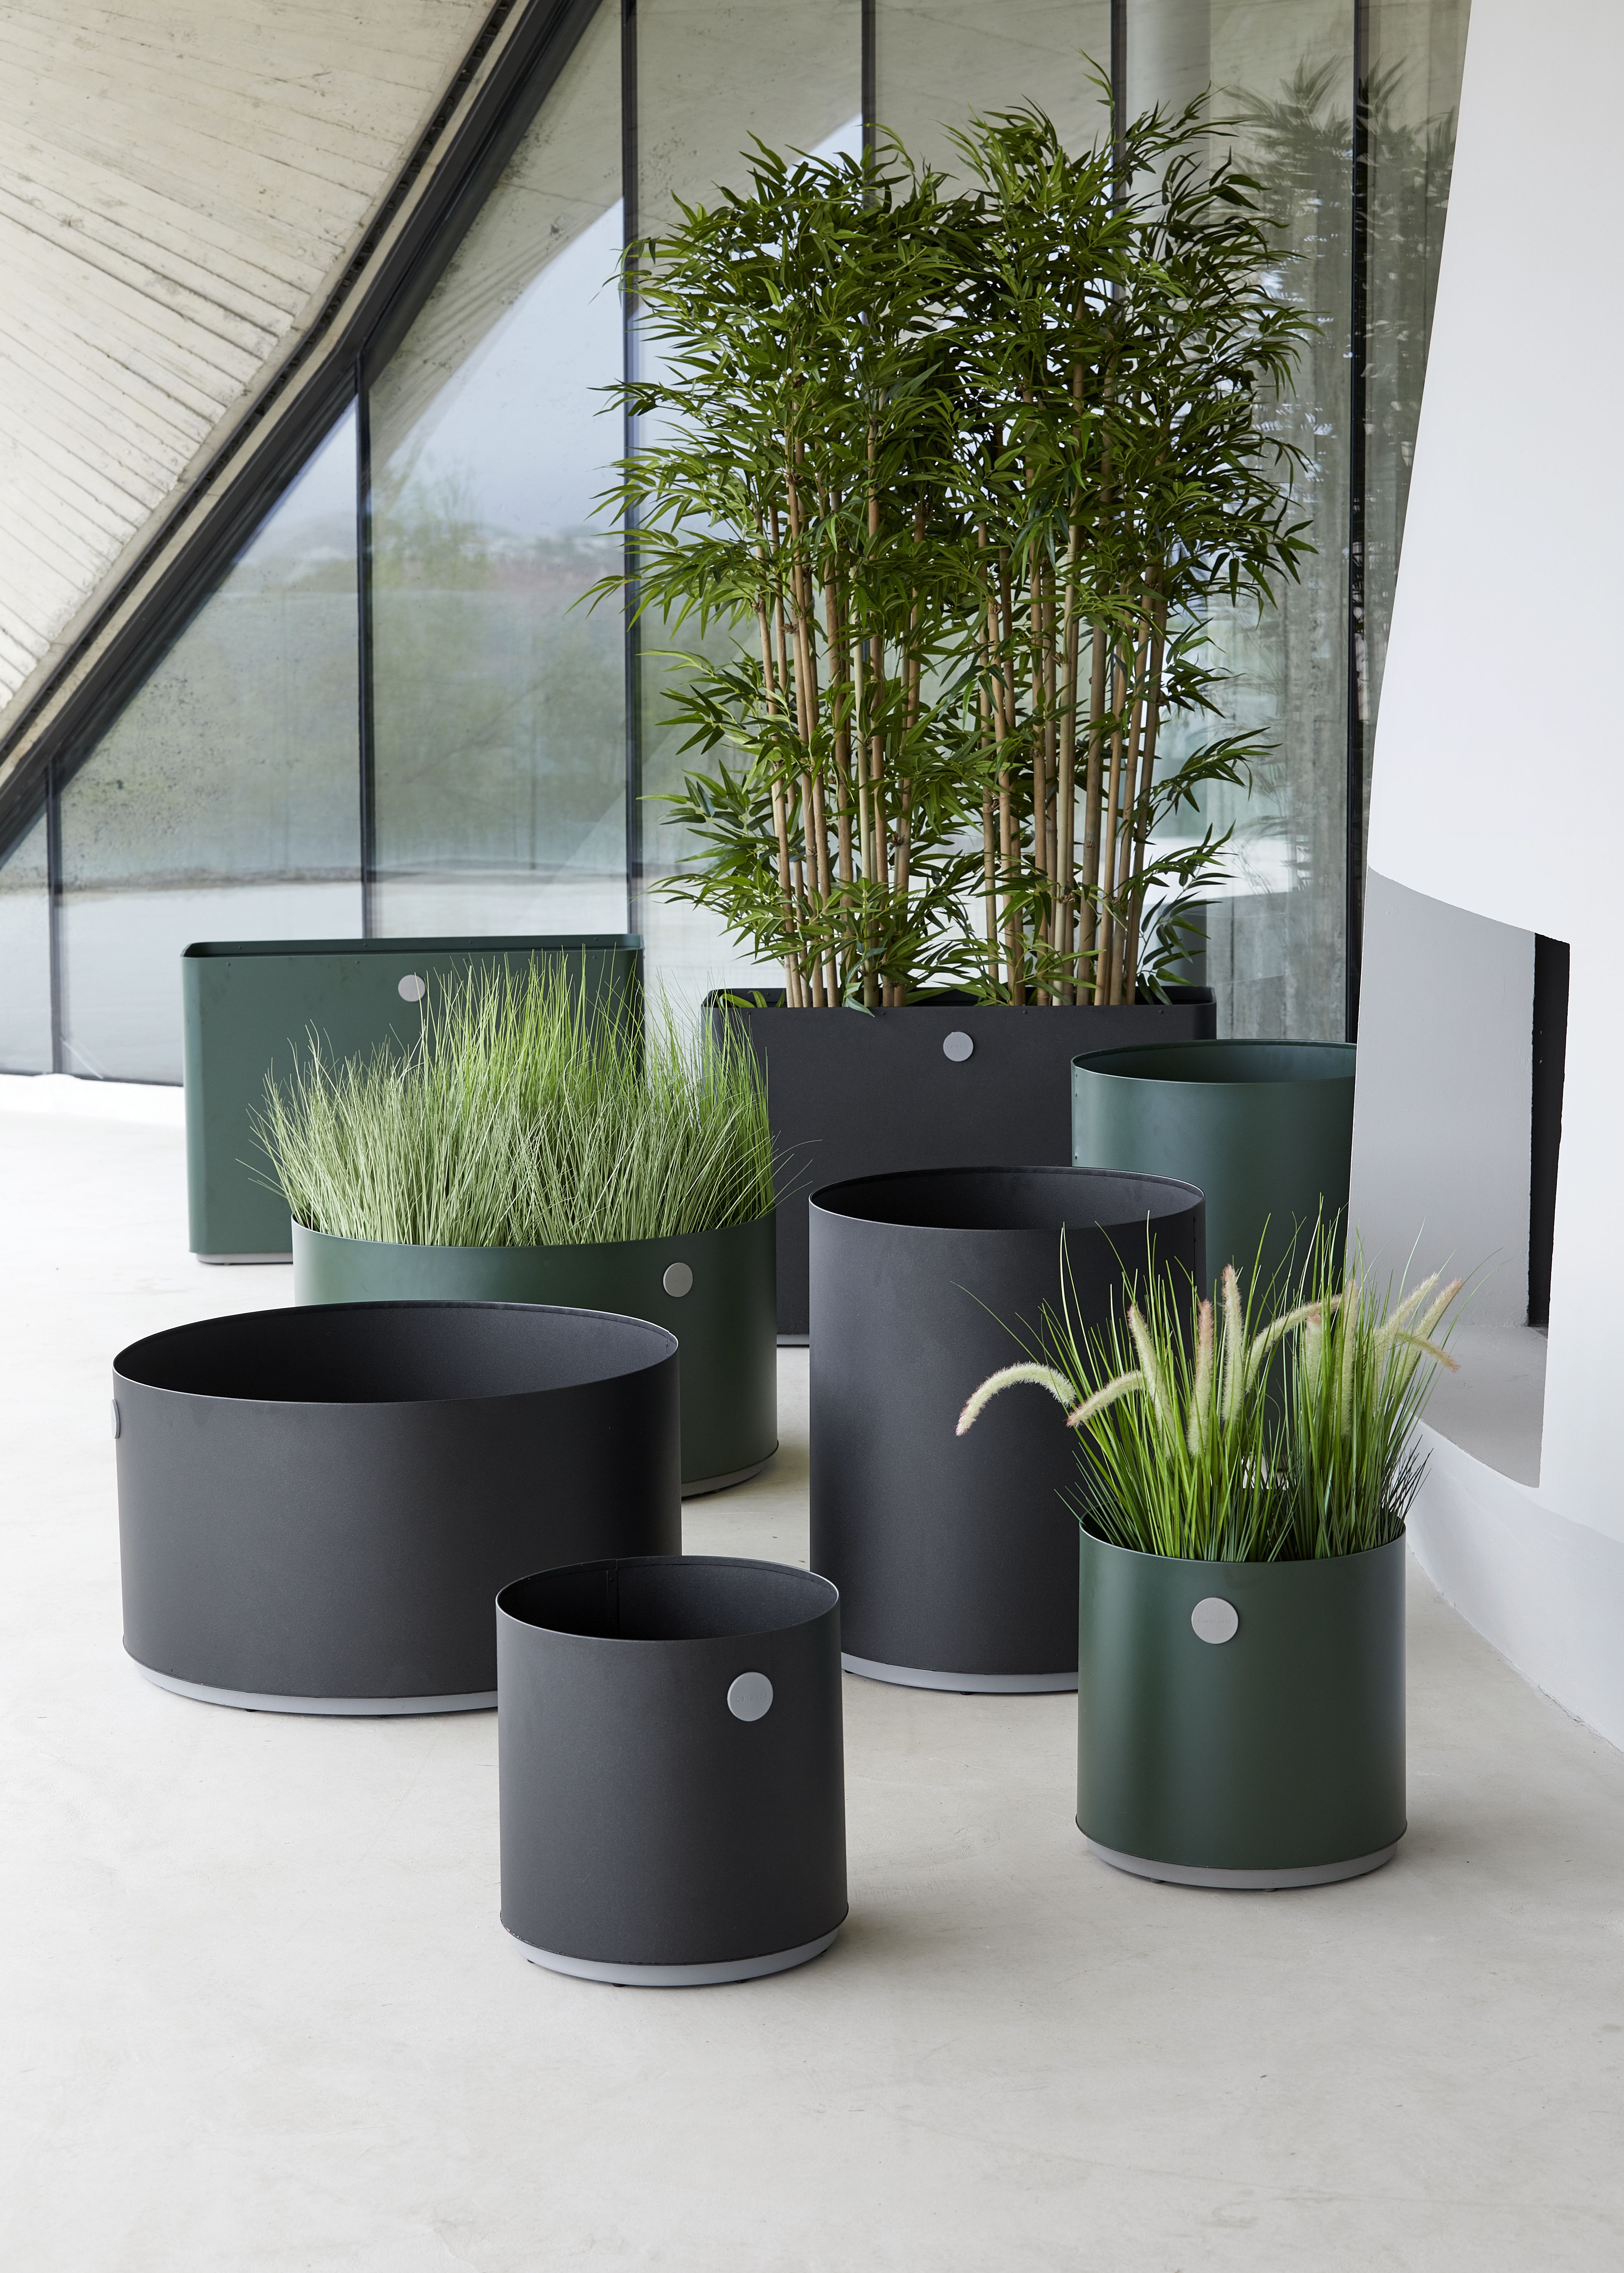 Give your outdoor space a modern update with the Grow planter boxes